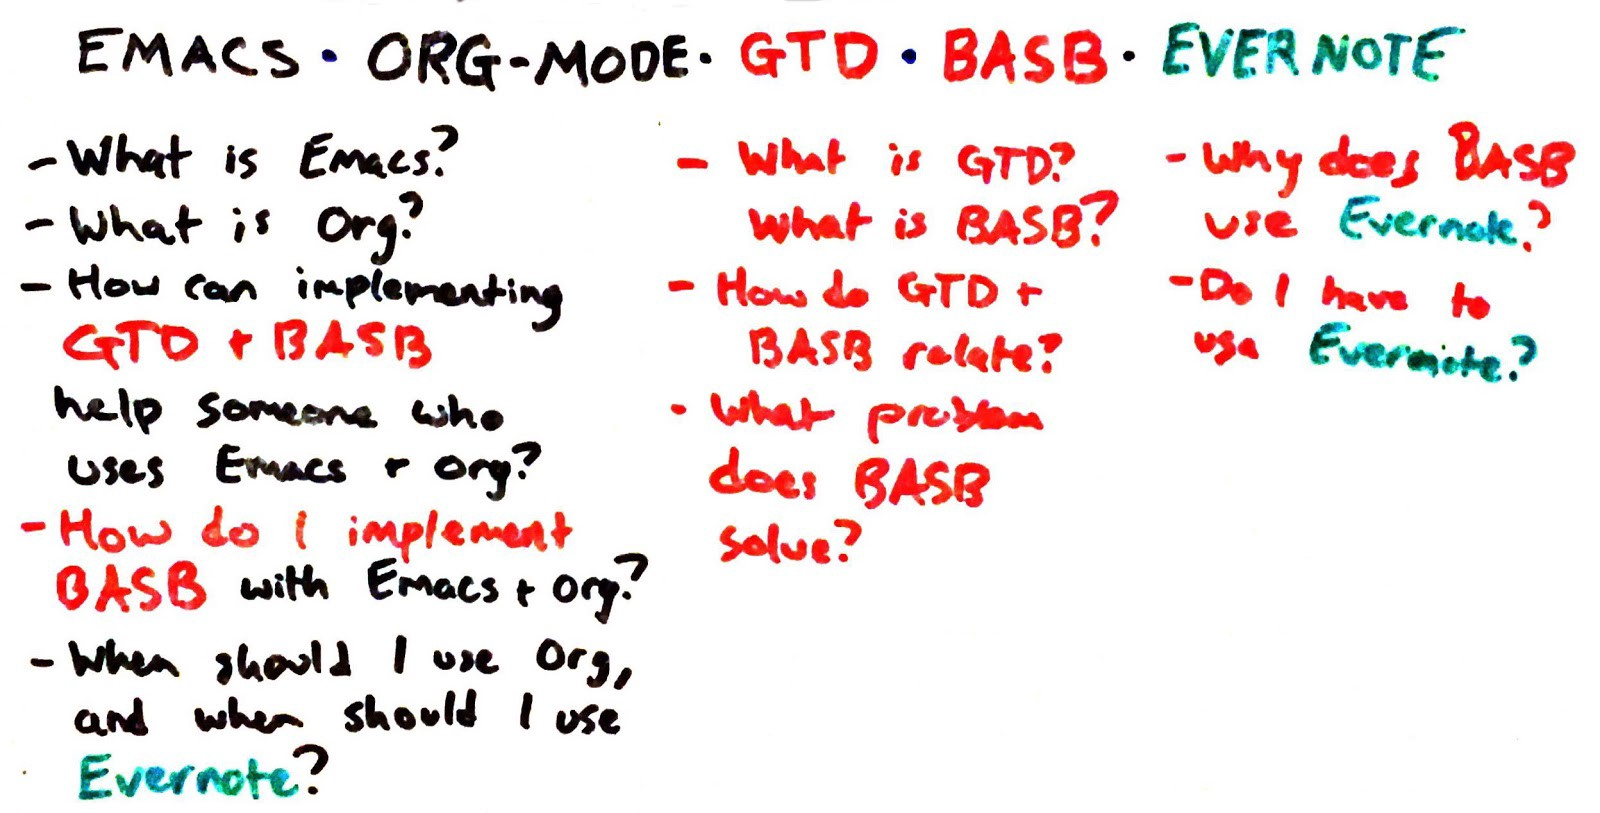 Implementing A Second Brain in Emacs and Org-Mode - Tasshin